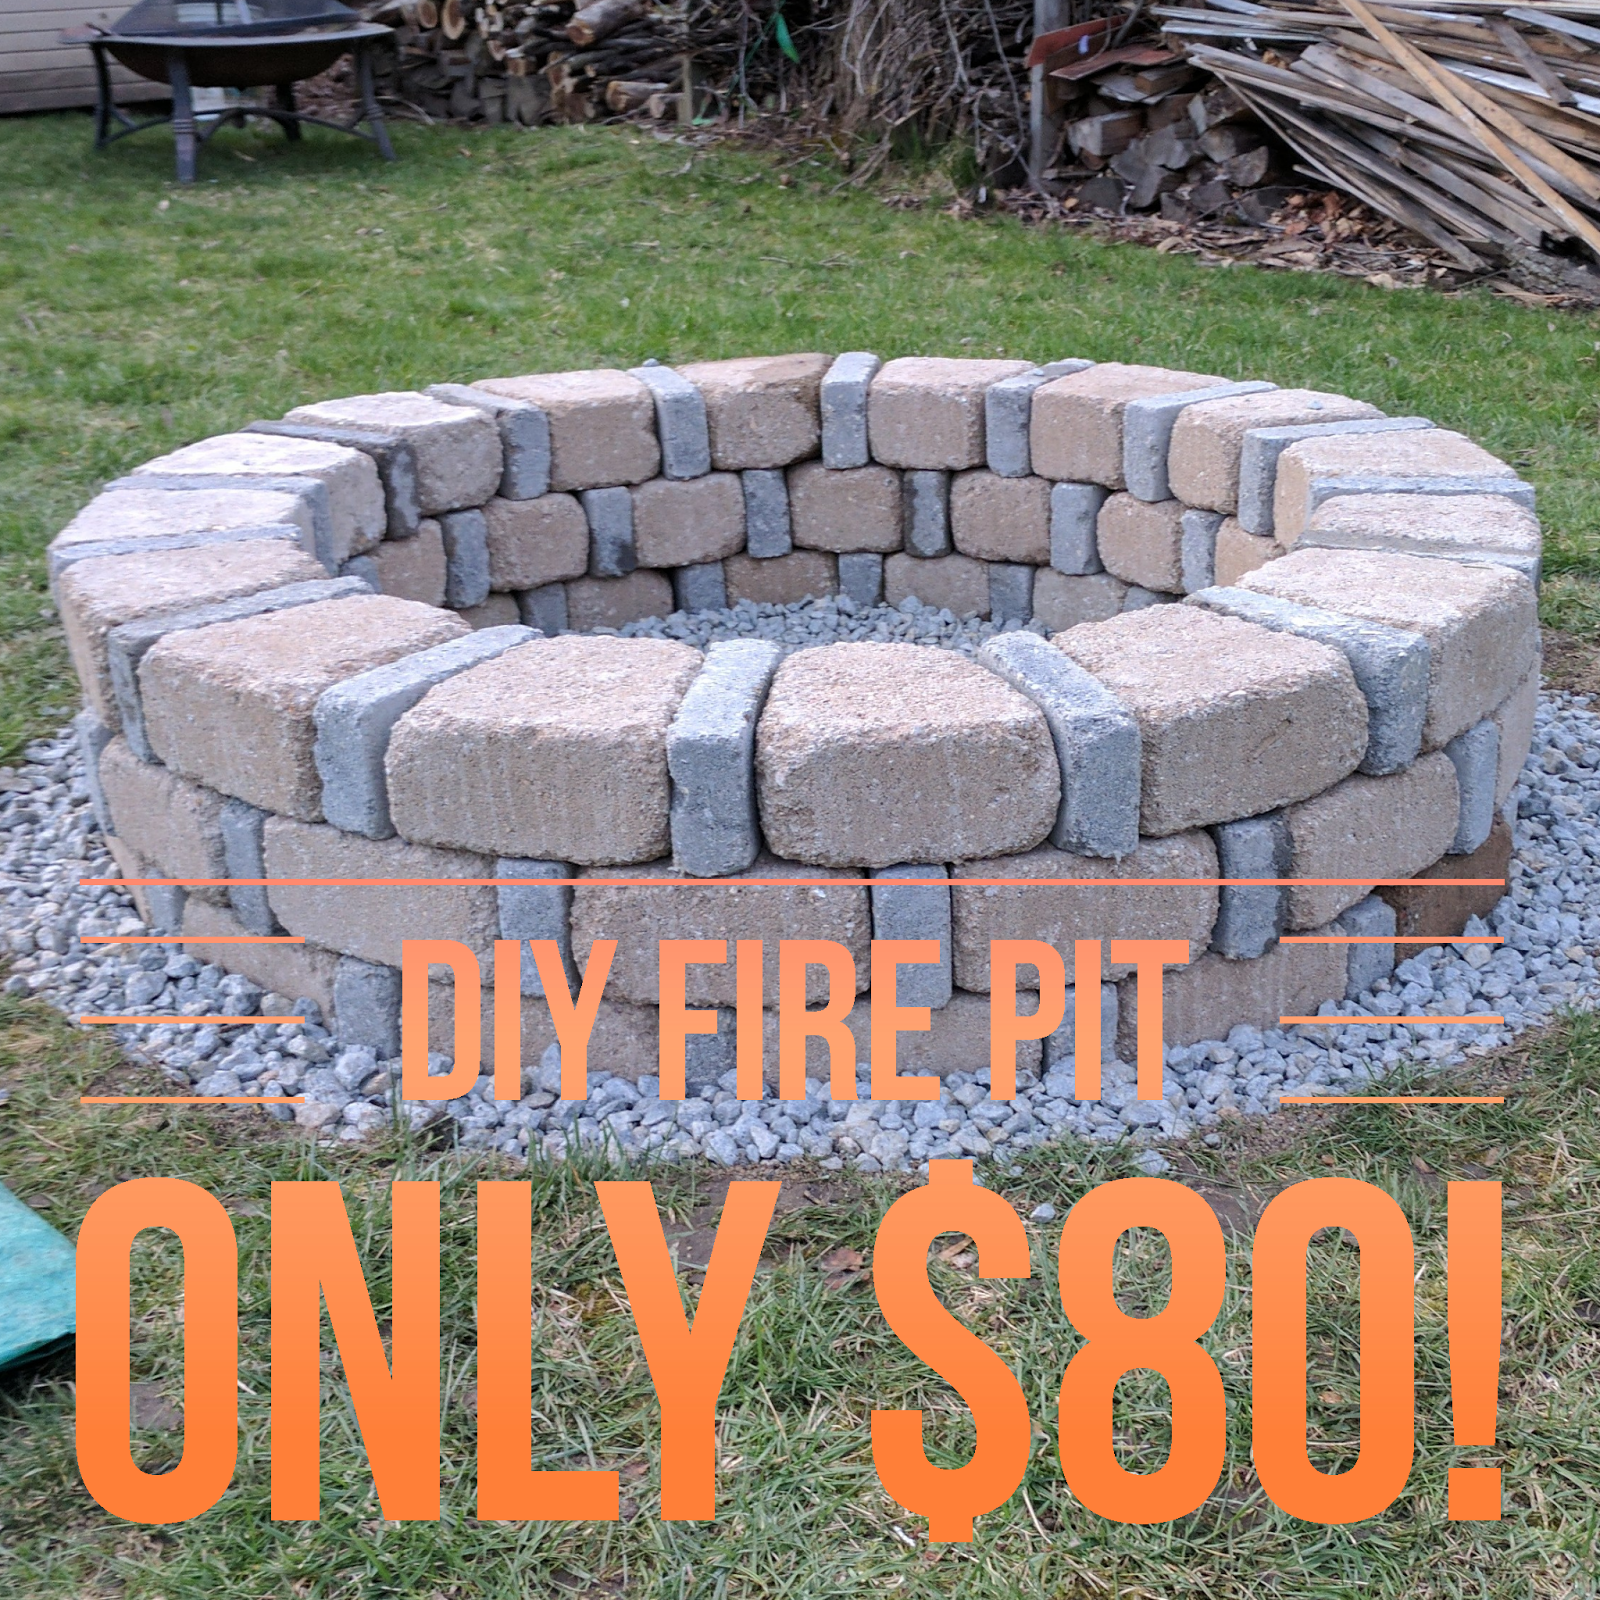 DIY Brick Fire Pit For Only $80 on Backyard Fire Pit Ideas Diy id=57521